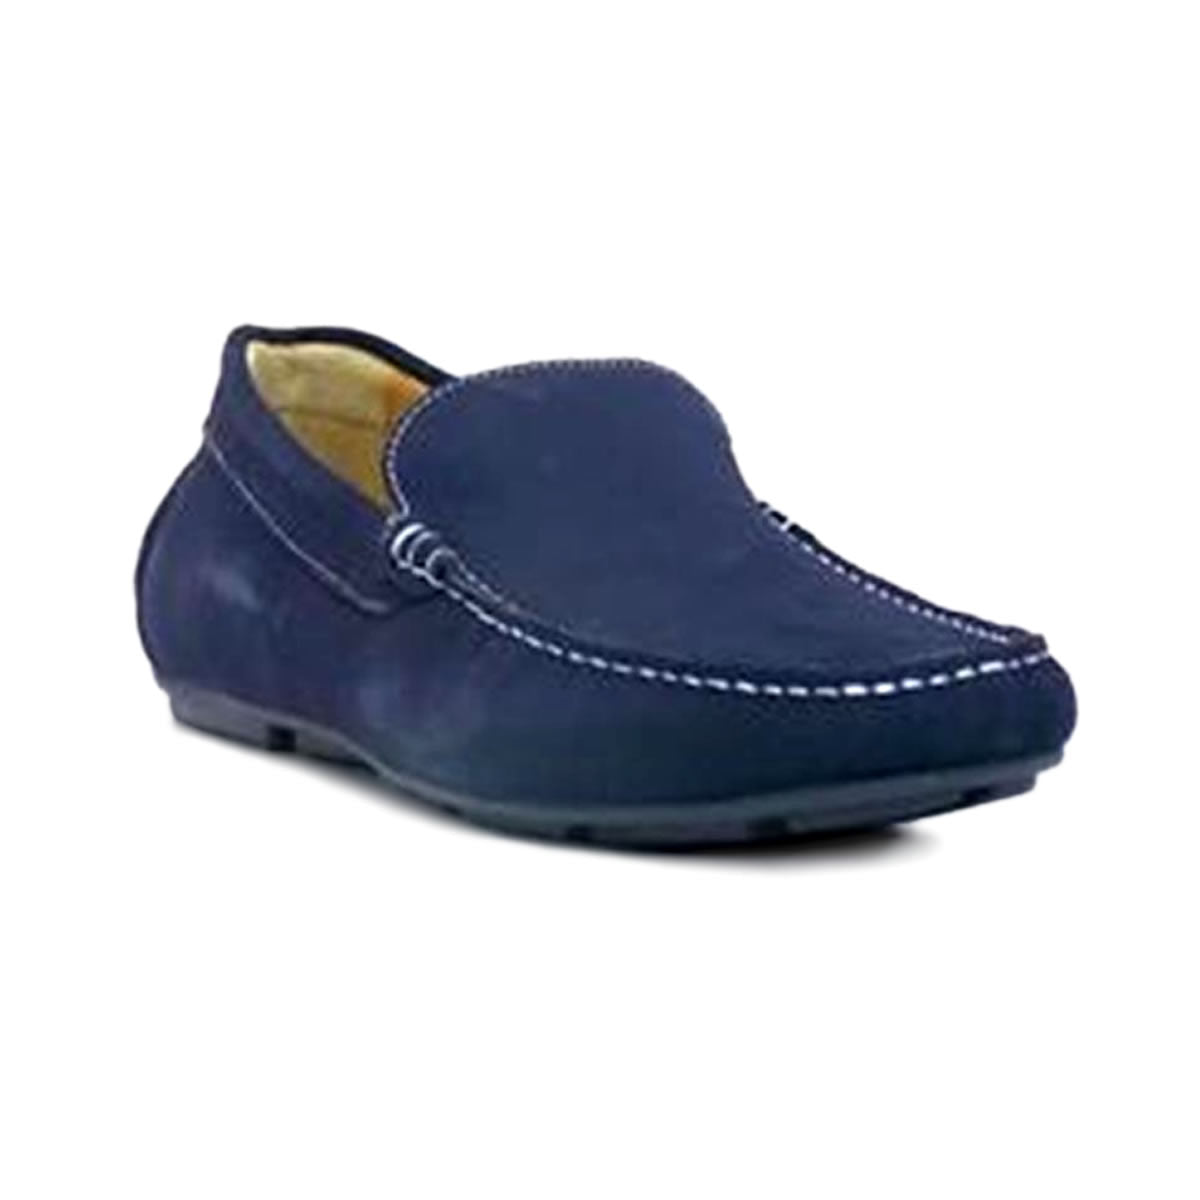 Dustin Slip On Loafer Shoe